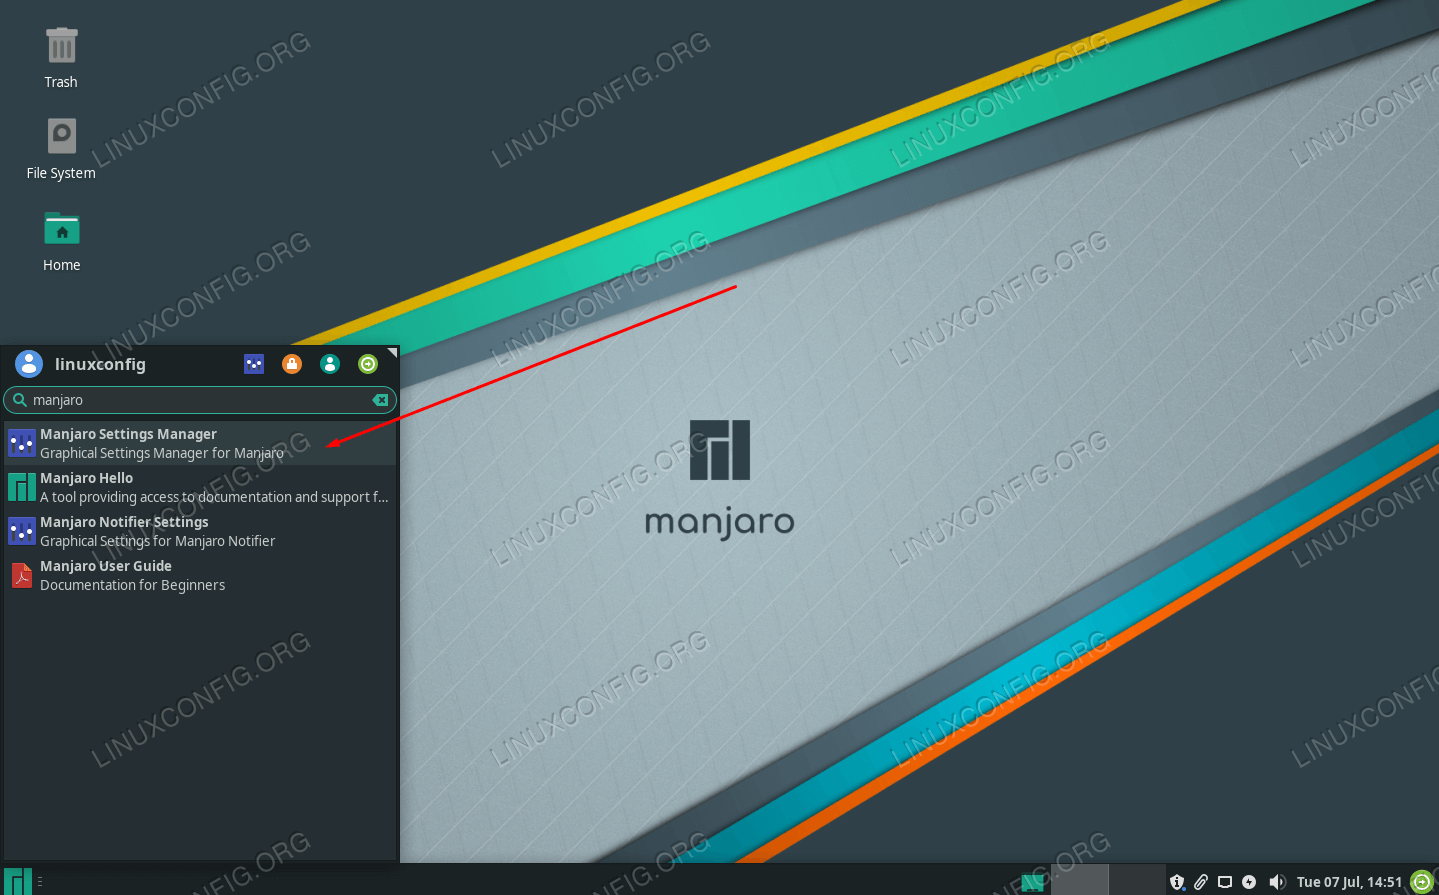 Locate the Manjaro Settings Manager from the application launcher